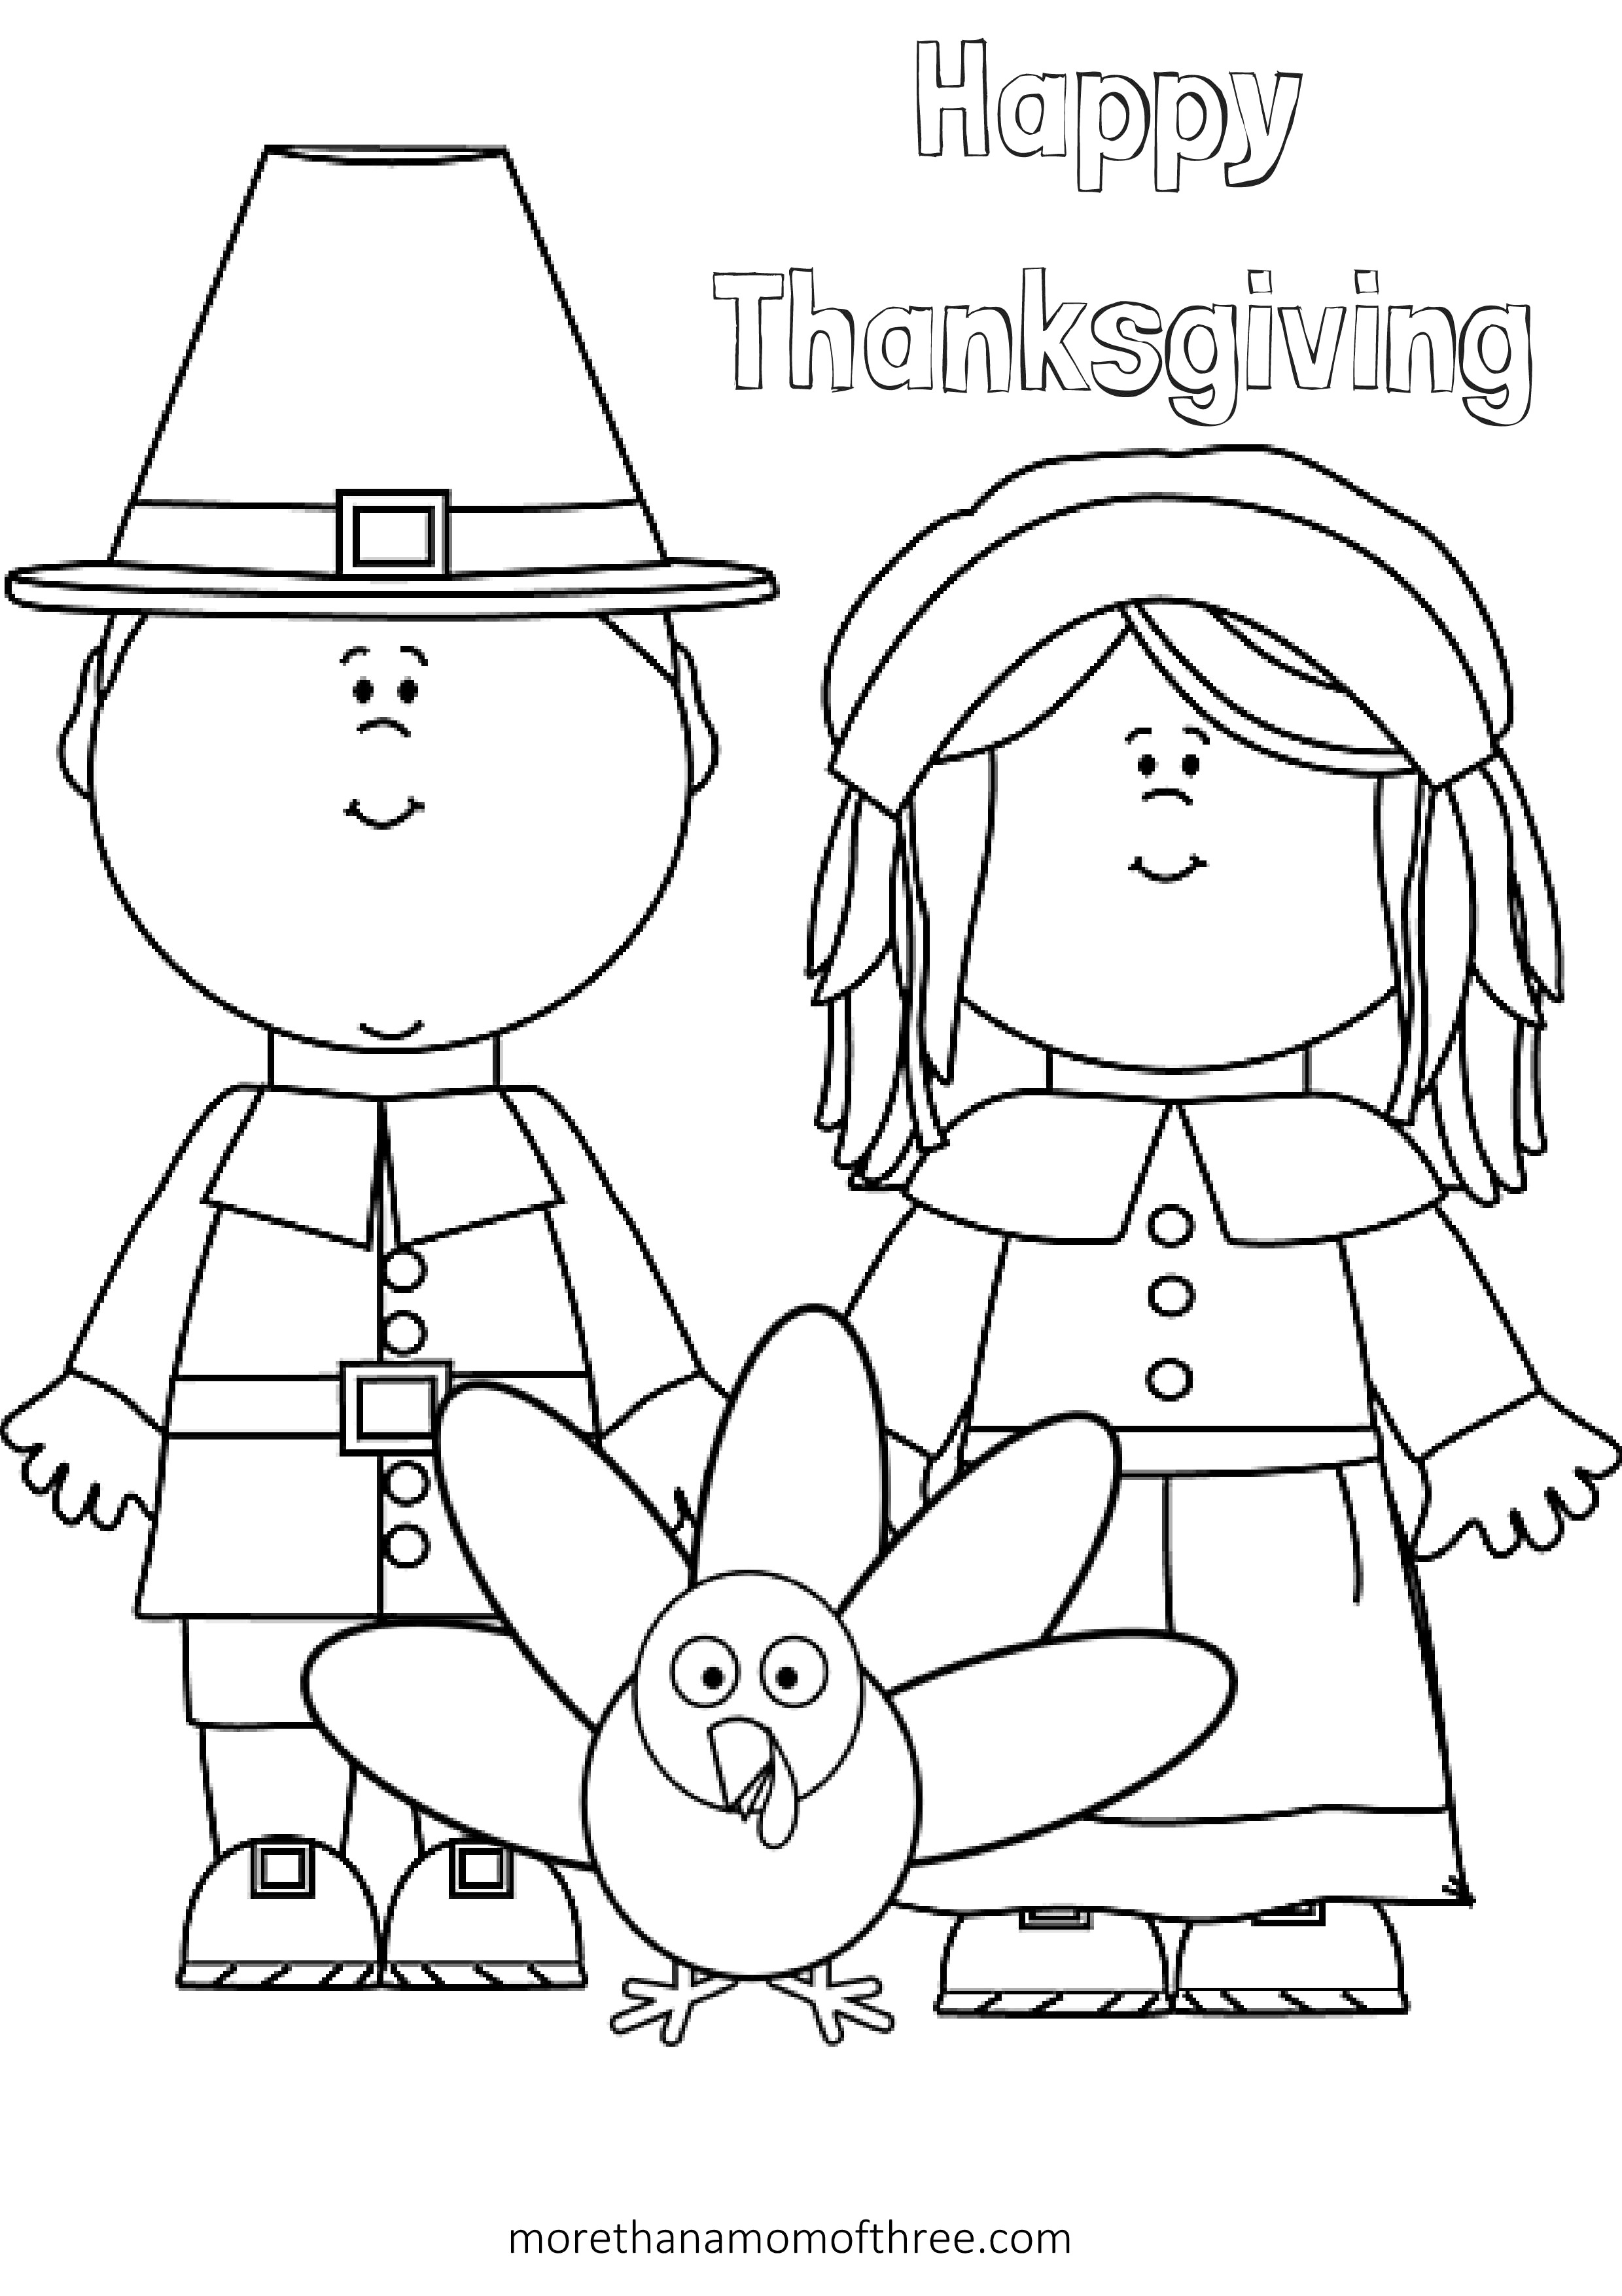 Christmas Coloring Pages Toddlers With Free Christian Lovely Thanksgivi On For